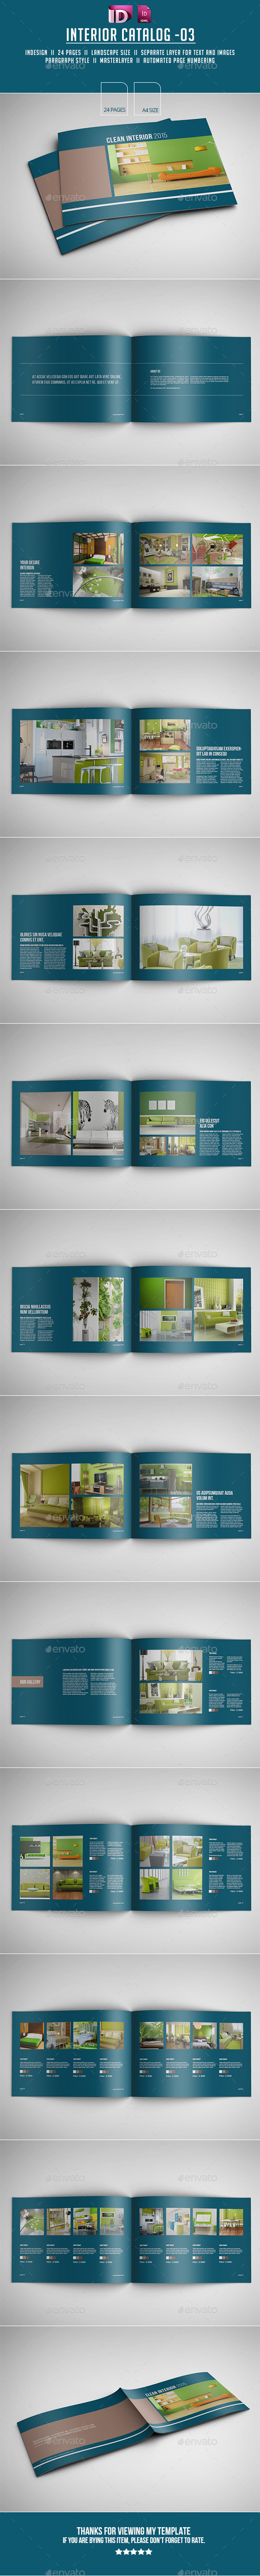 GraphicRiver Interior Catalog 03 11928168